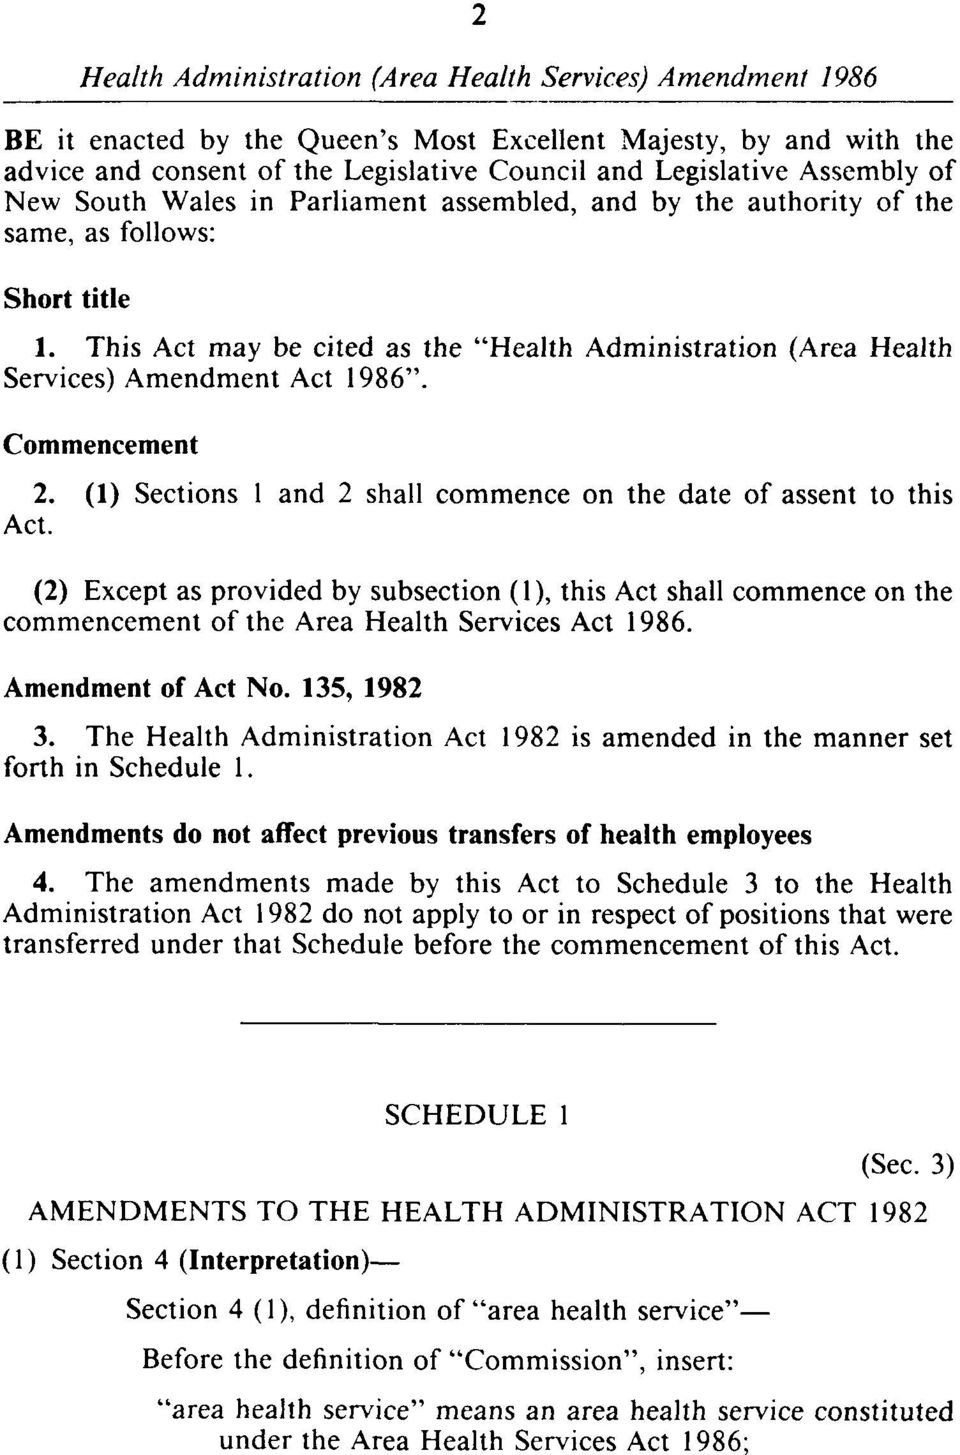 (1) Sections 1 and 2 shall commence on the date of assent to this Act. (2) Except as provided by subsection (1), this Act shall commence on the commencement of the Area Health Services Act 1986.